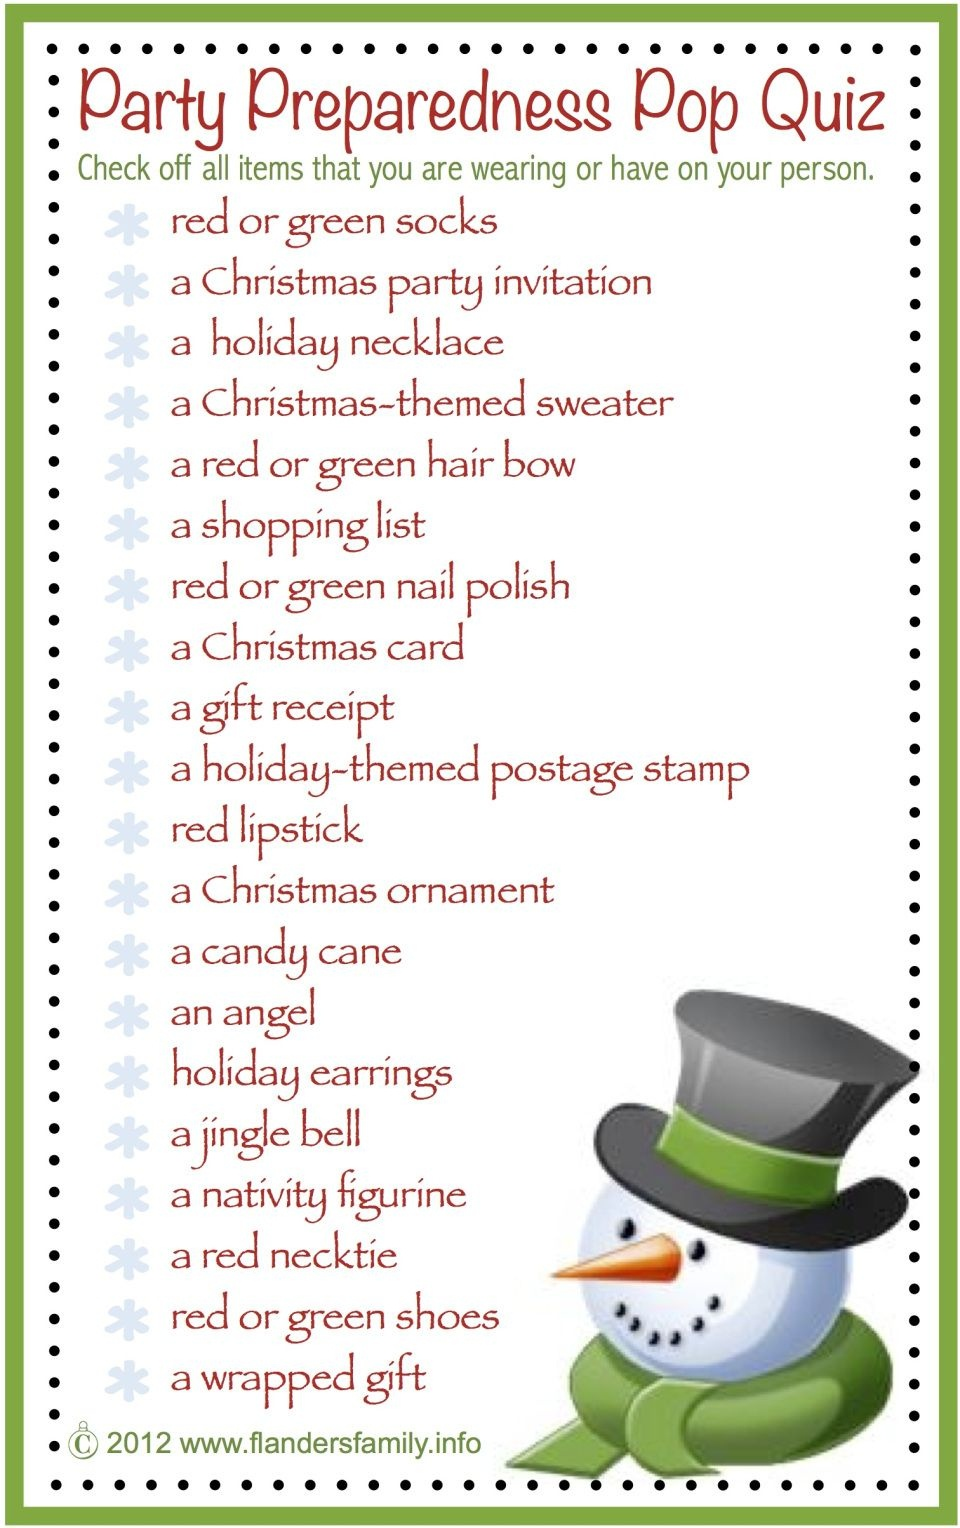 This Site Has Lots Of Free Printable Party Games And Activities For - Free Holiday Games Printable